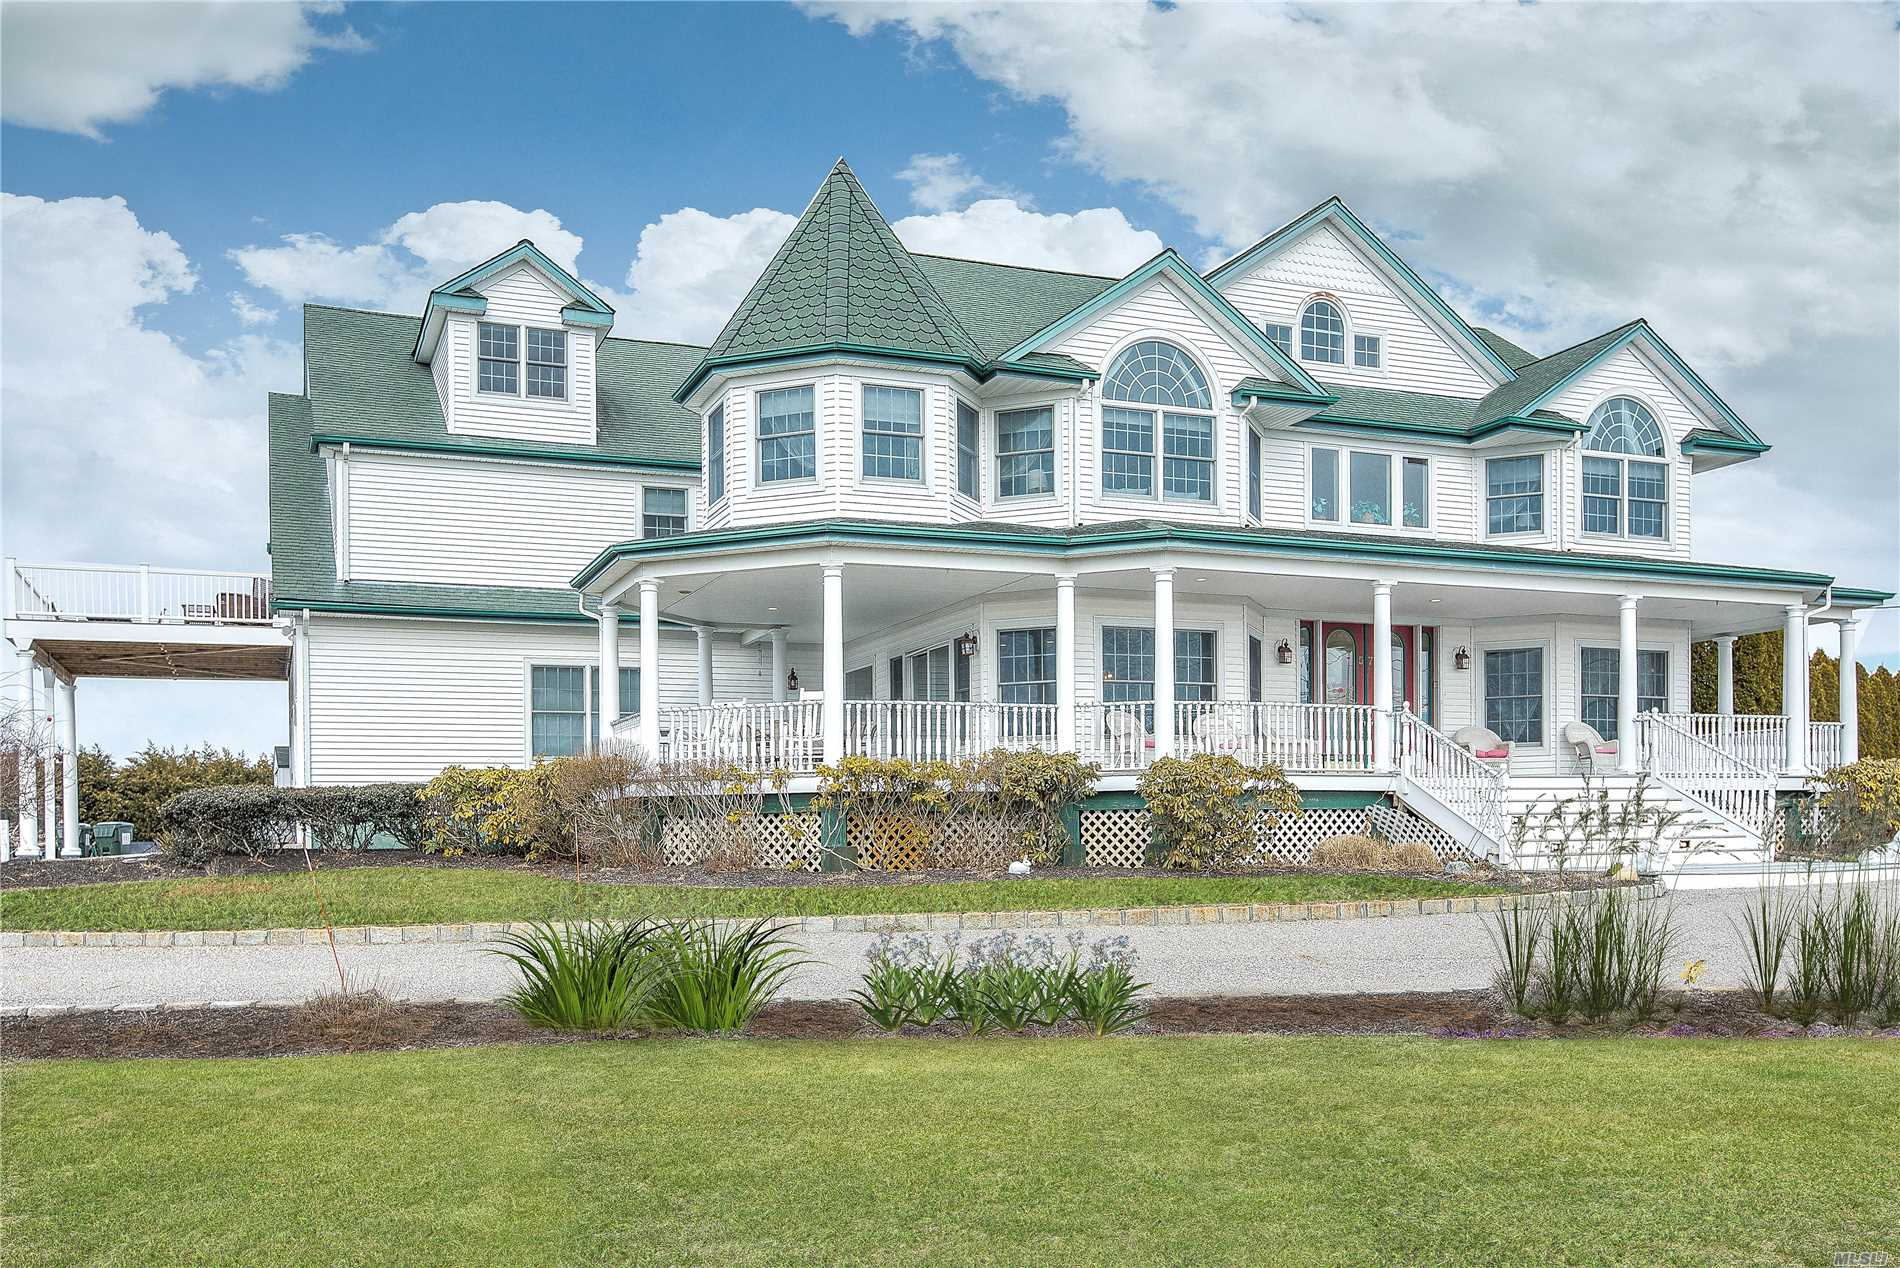 Look Out Over The Water From This 8, 500 Sqft Victorian With 8 Bedroom Suites, Spacious Living Areas And Views Of The Bay And Creek. Complete With A Full Finished Basement And In-Ground Pool, Set On Over 1.5 Acres And Just Minutes From The Hamptons.